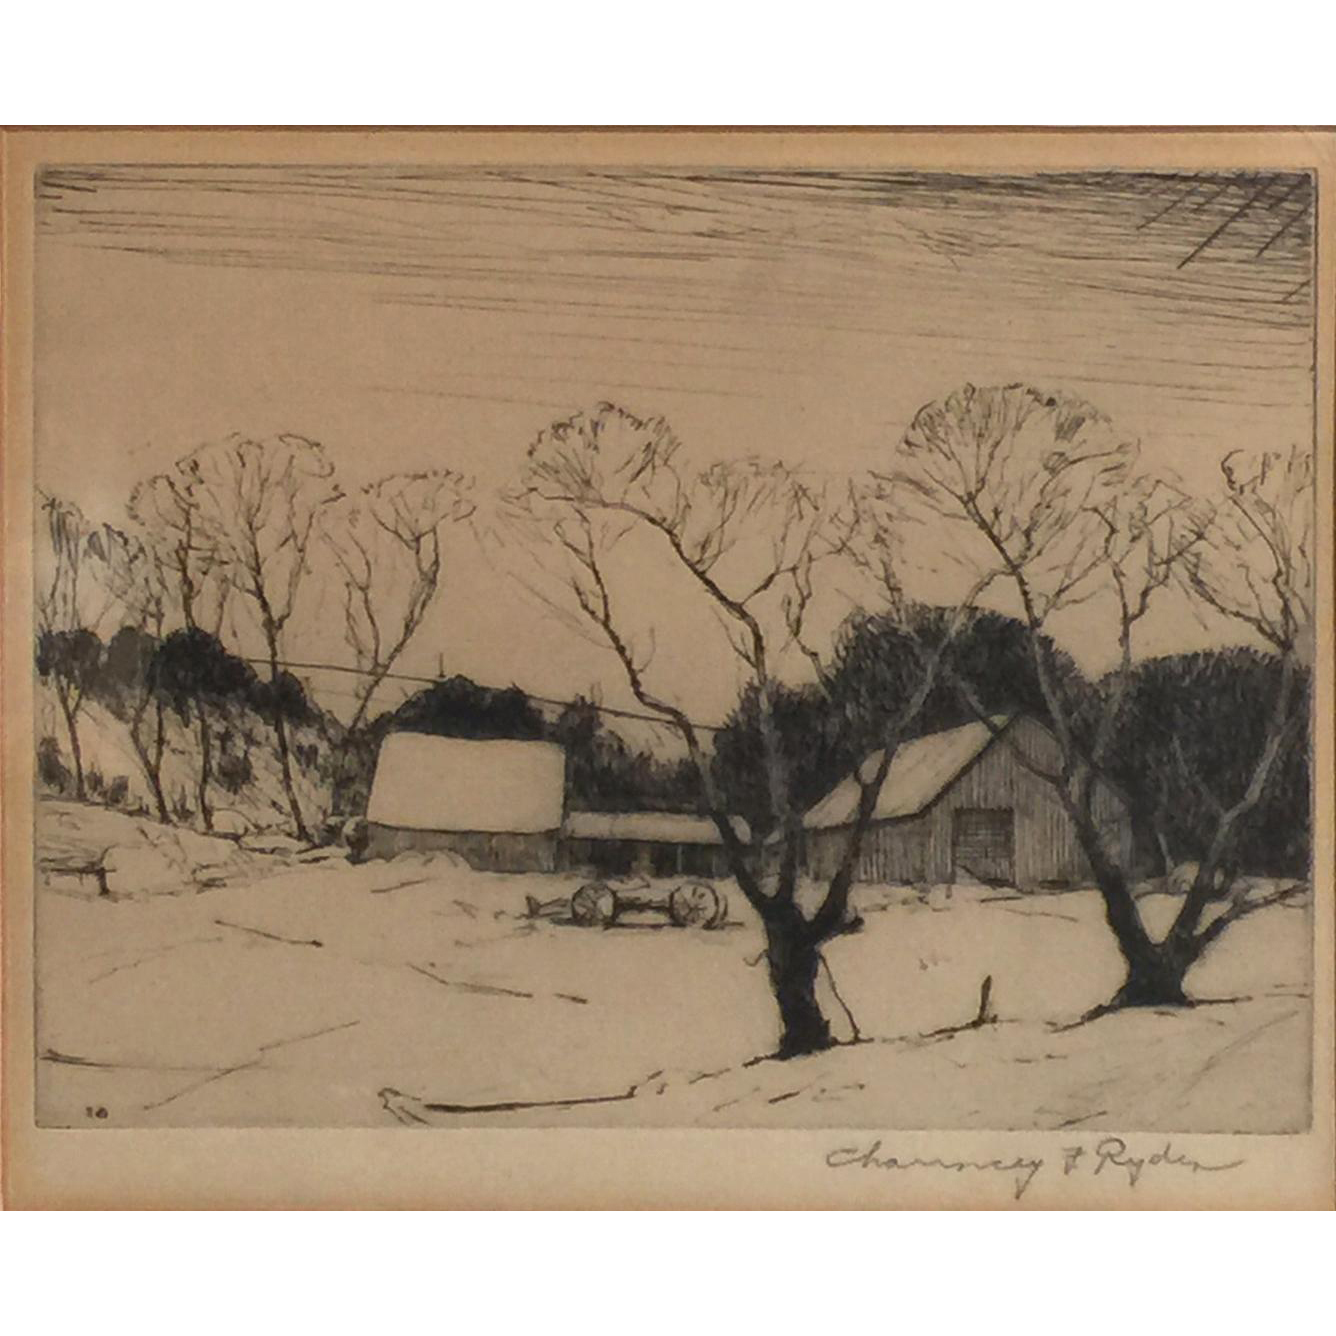 Chauncey Foster Ryder Drypoint Etching  of Winter Landscape